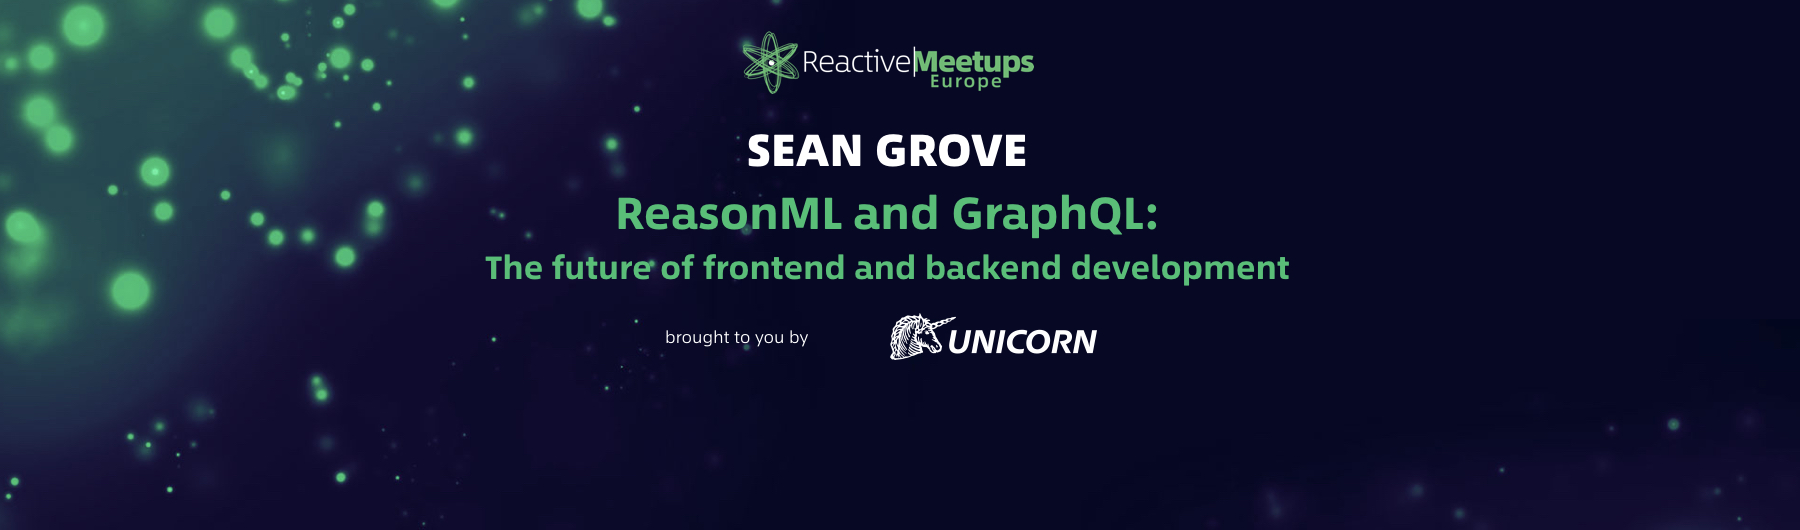 ReactiveMeetups Brno | Sean Grove